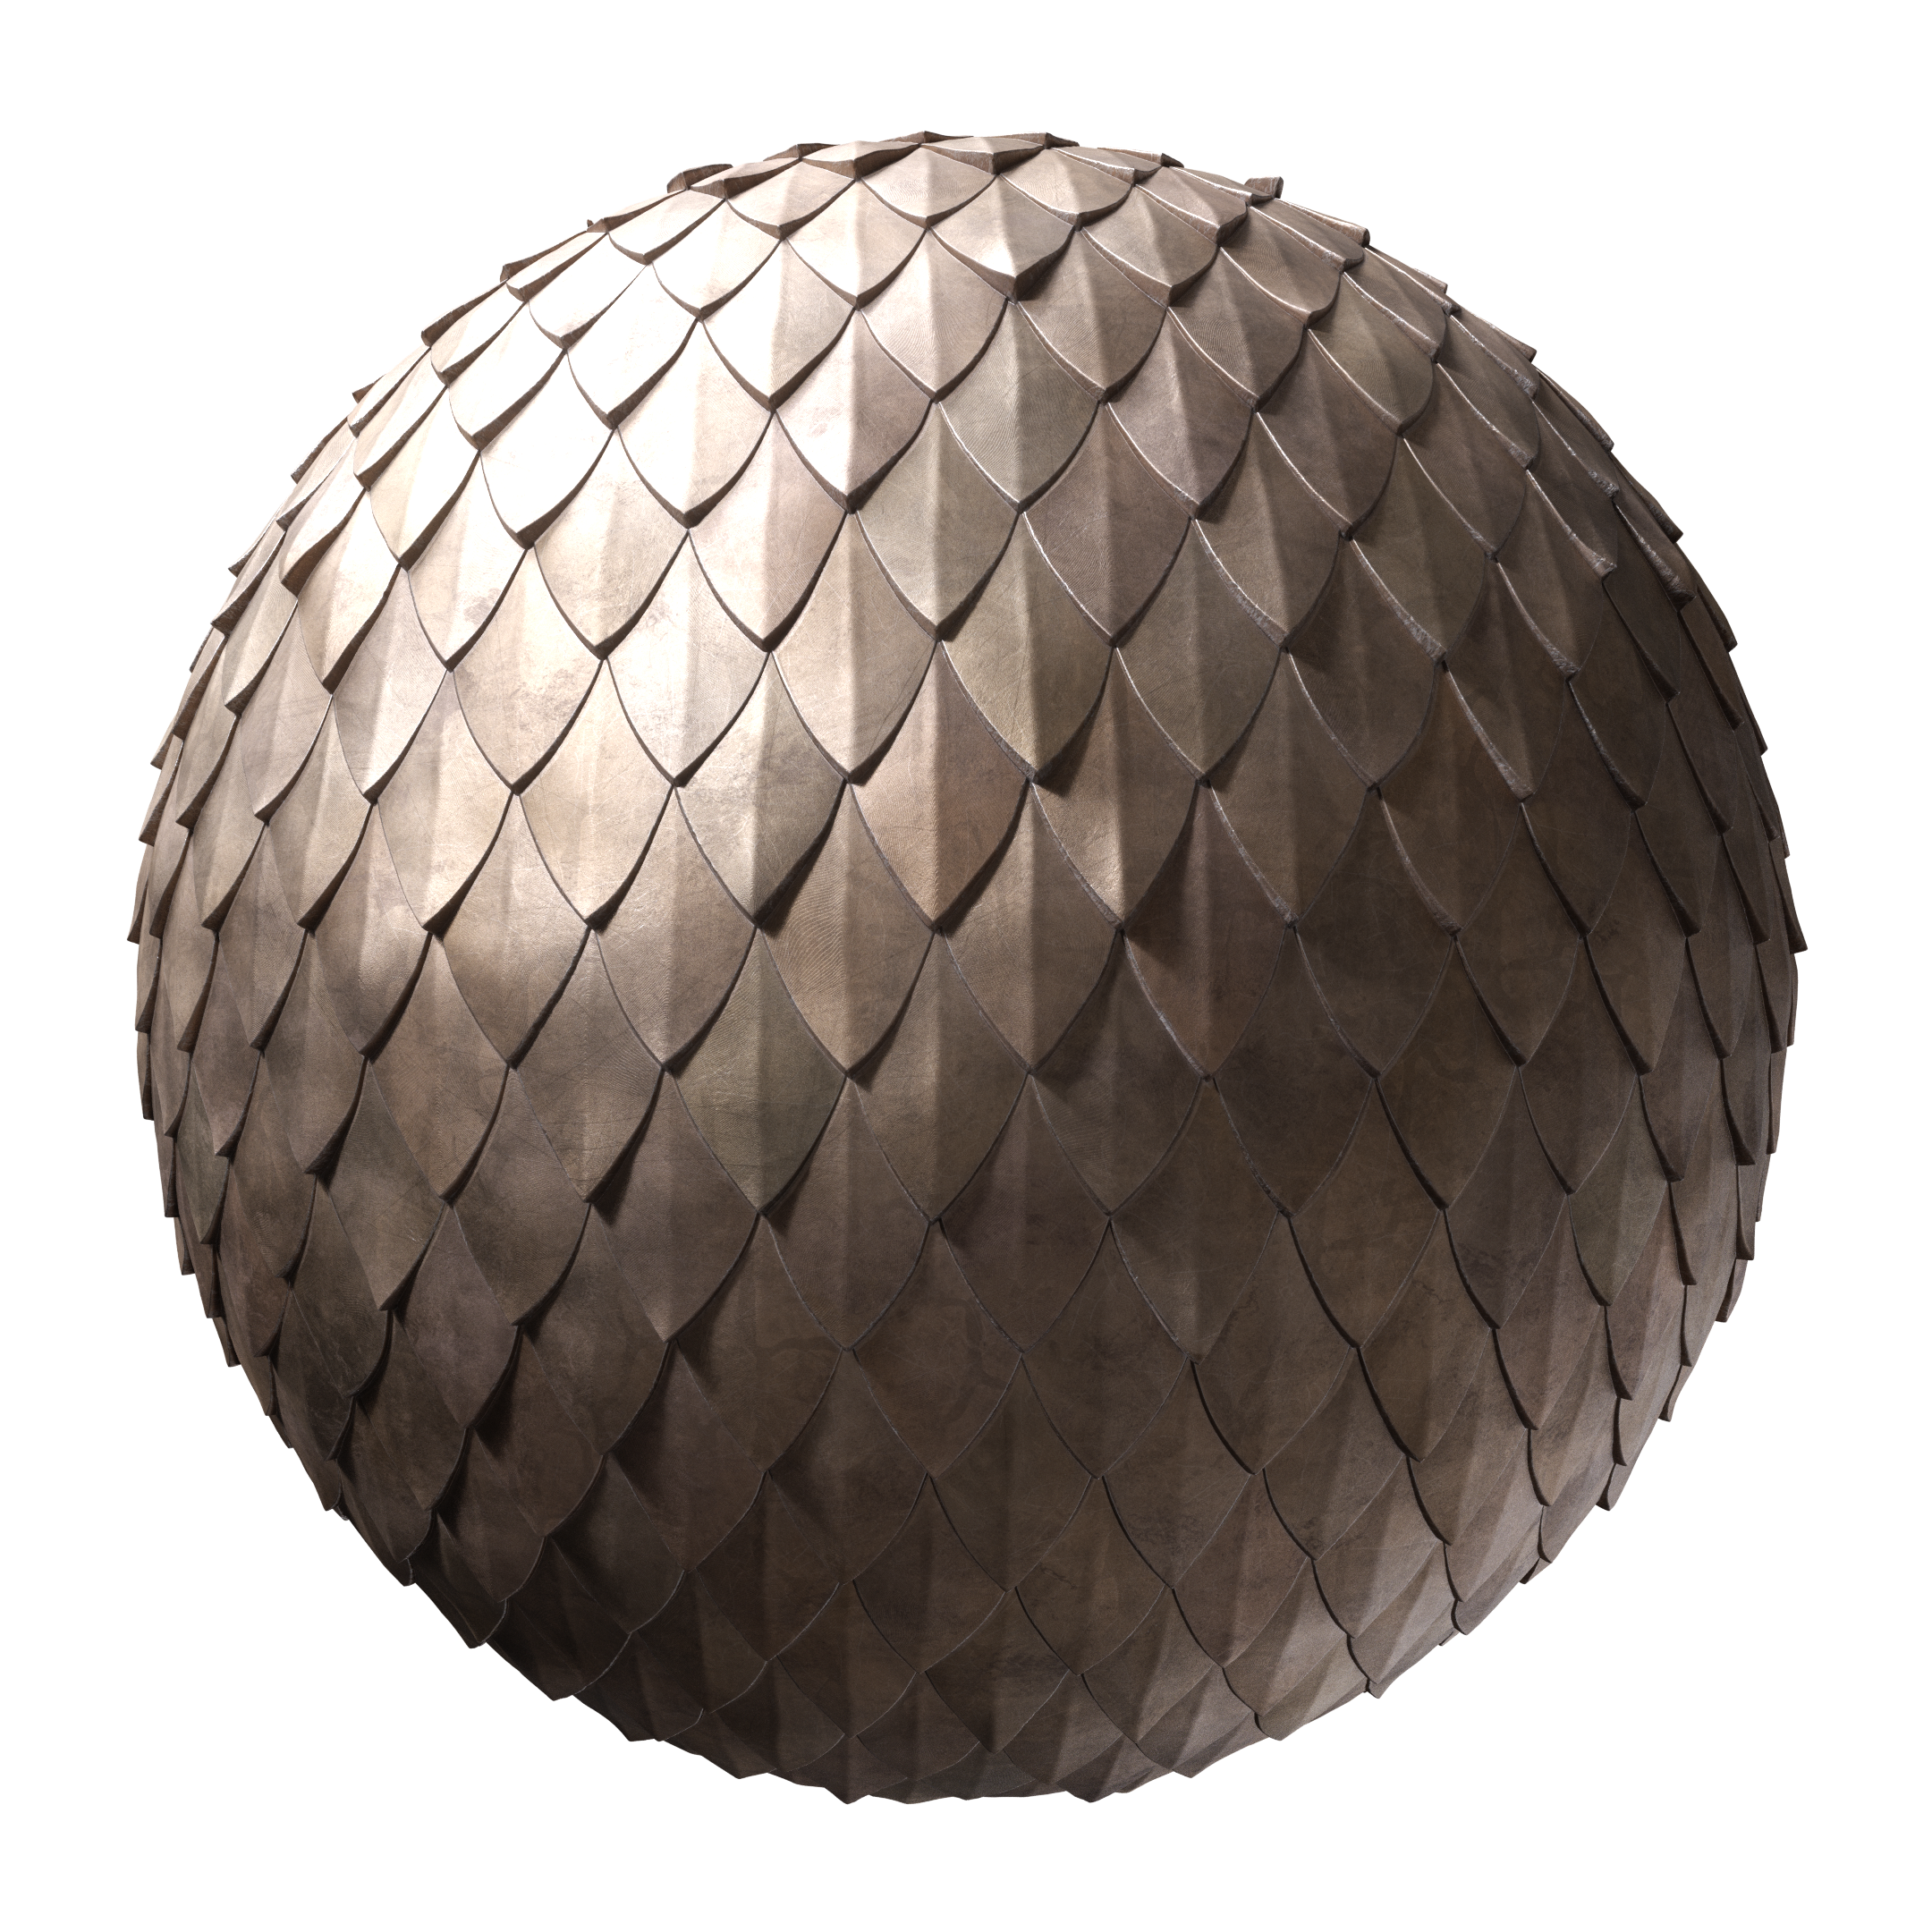 Tcom_Metal_ScaleMail_thumb1.png